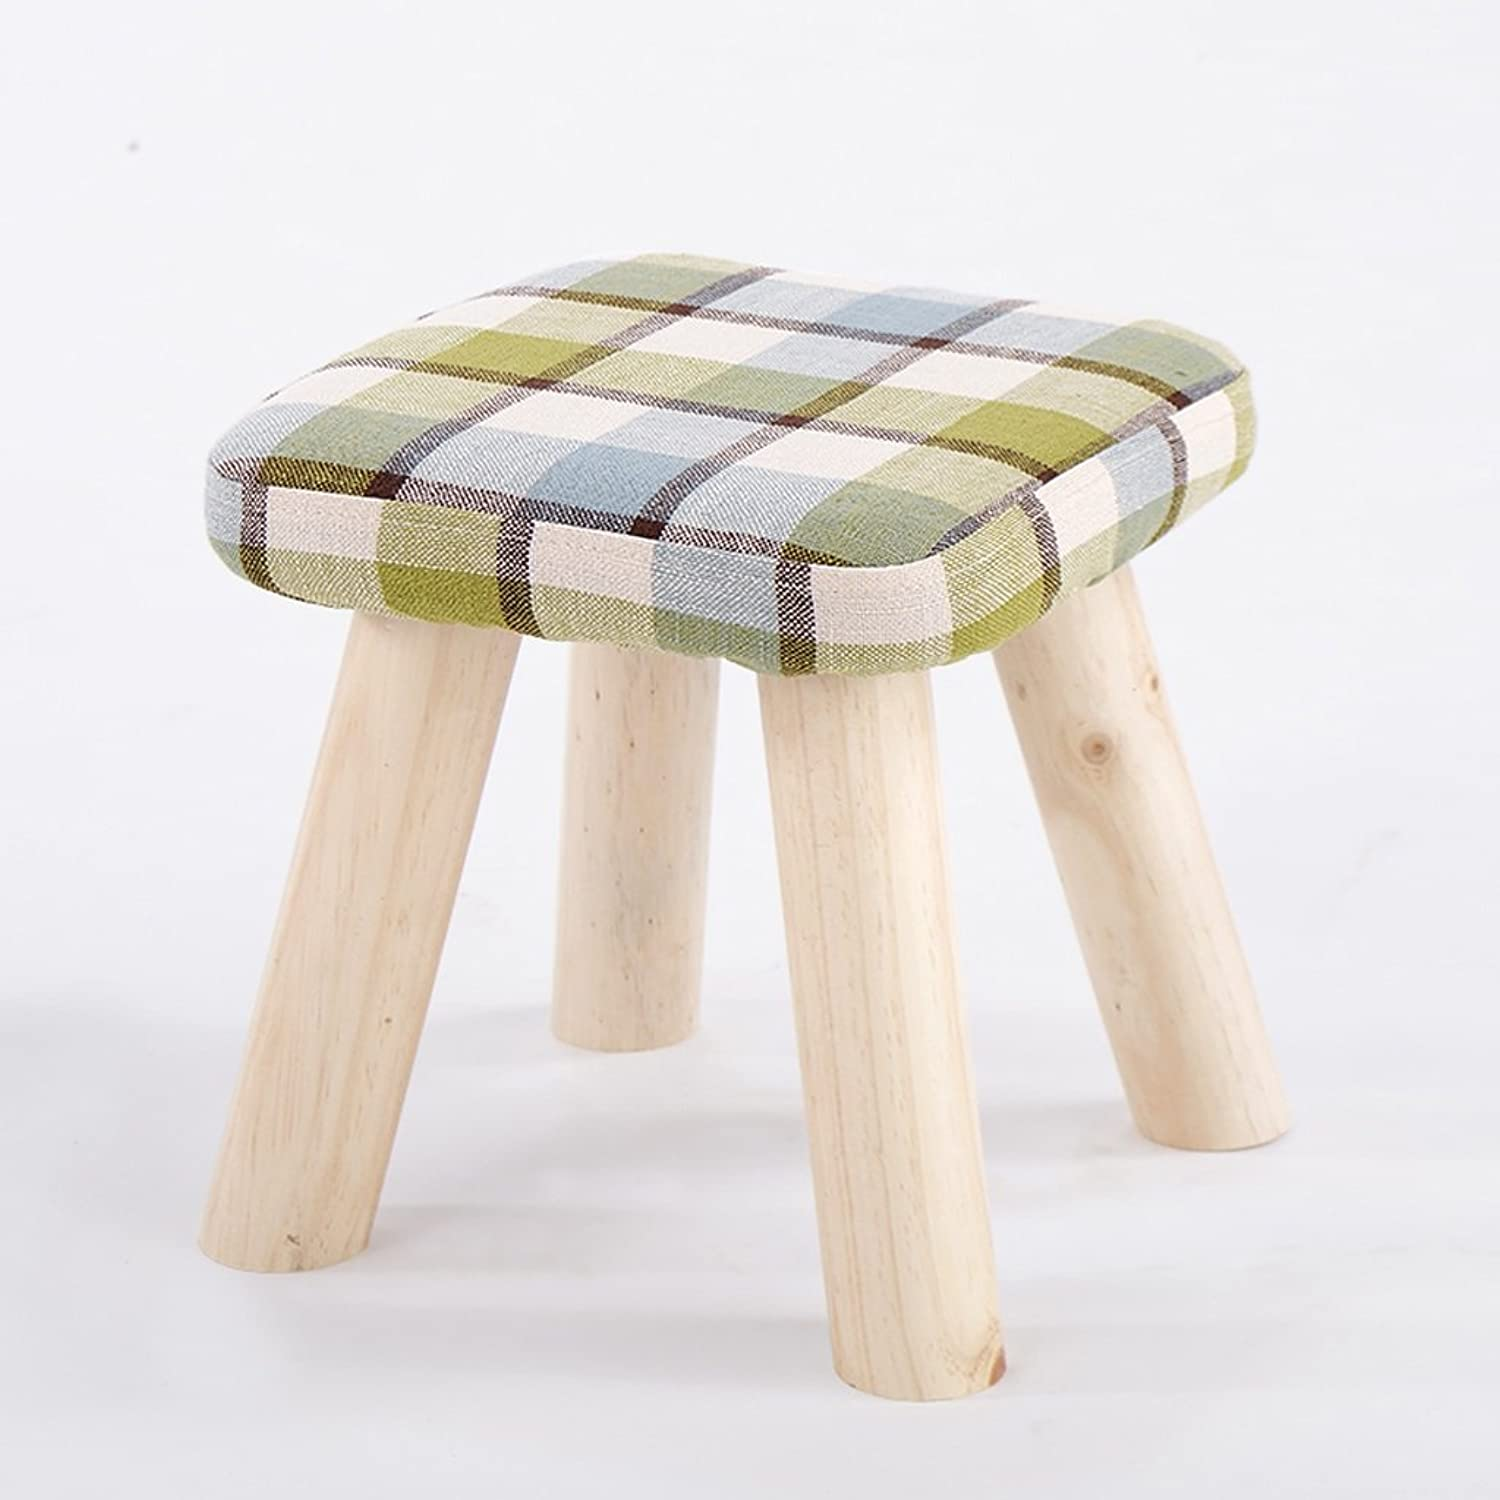 Small Stool Living Room Tea Table Cloth Art Chair Porch shoes Change Stool Solid Wooden Frame (color   Green)